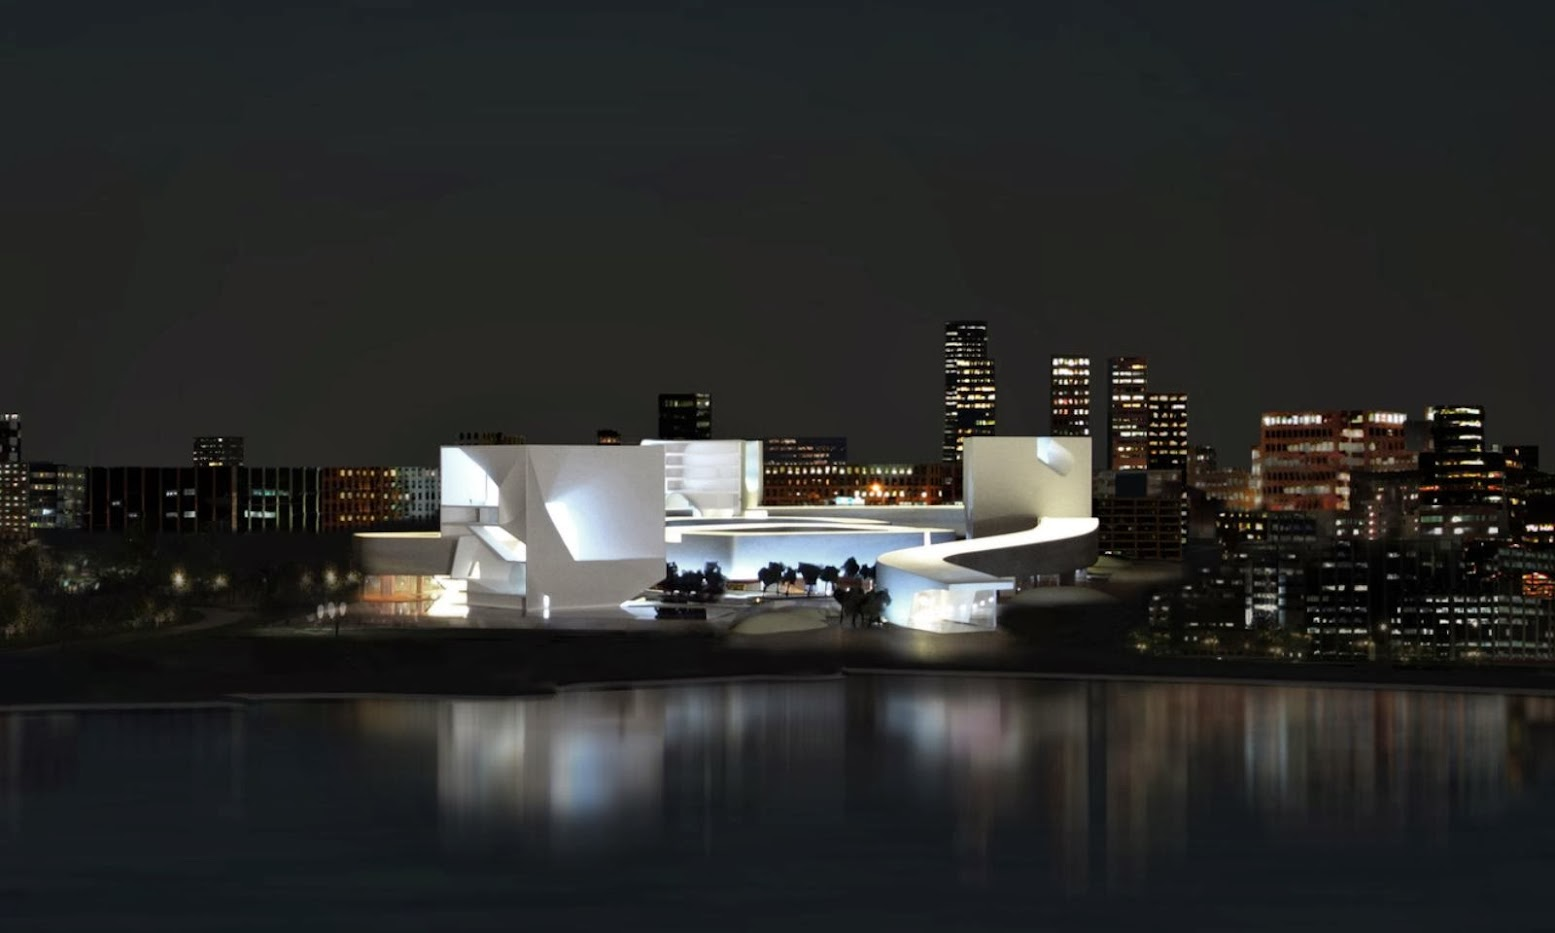 Tsingtao, Sciantung, Cina: [STEVEN HOLL WINS QINGDAO CULTURE AND ART CENTER COMPETITION]